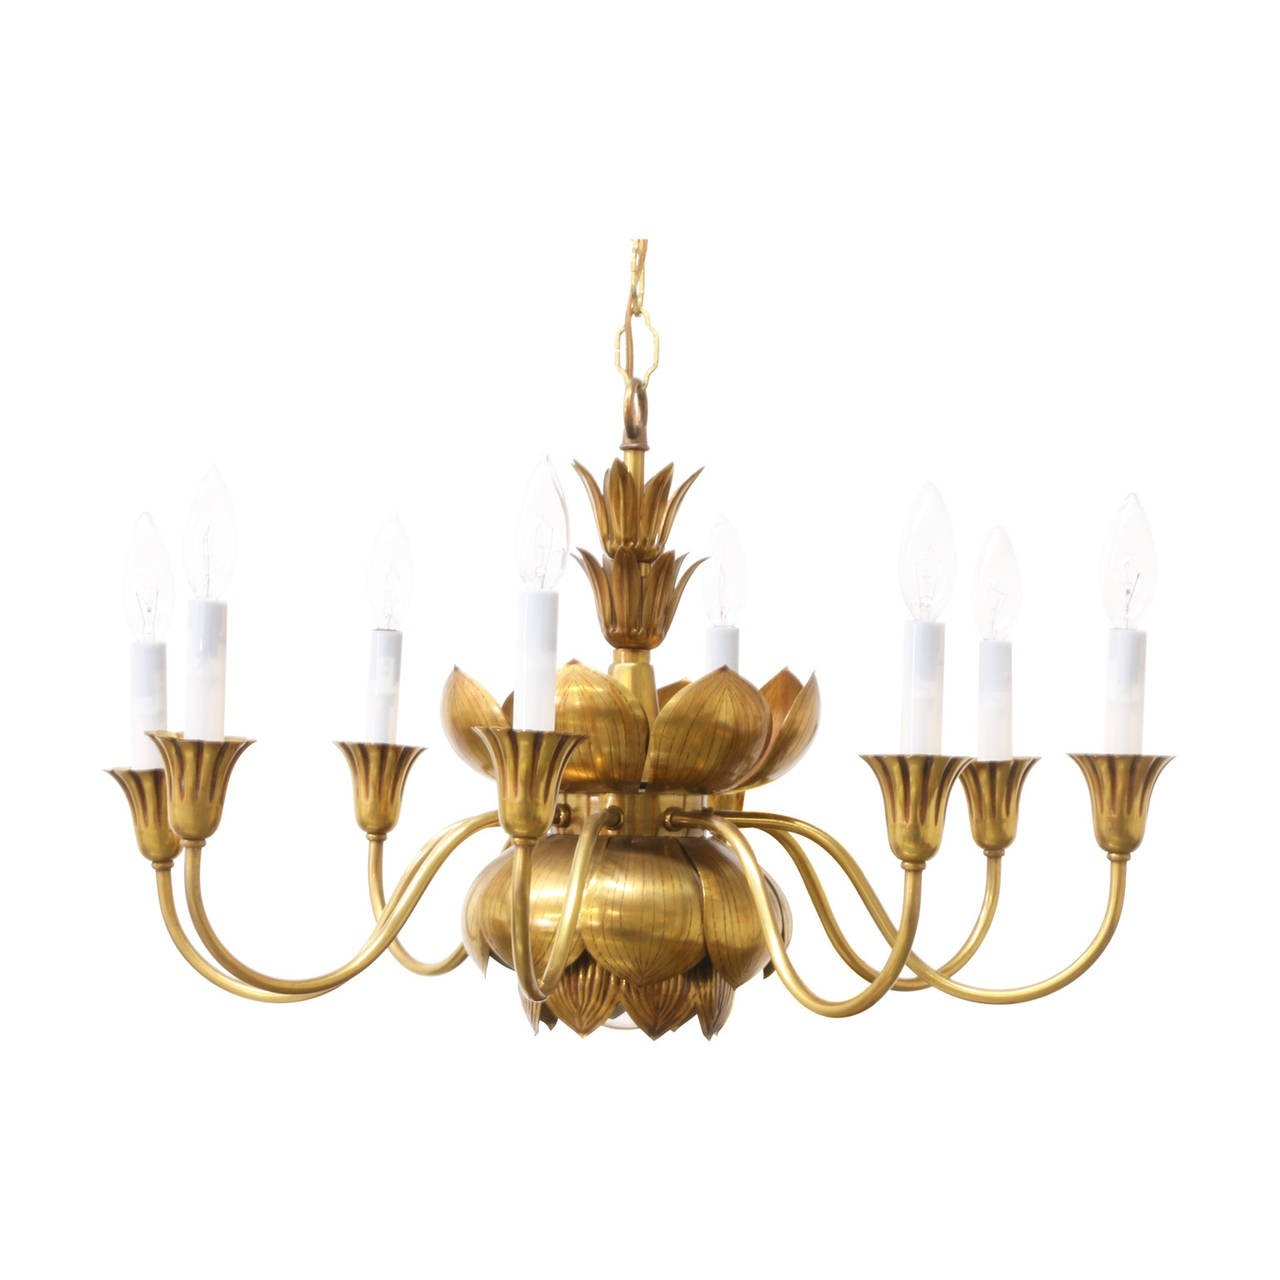 Vintage Brass Lotus Chandelier Feldman At 1stdibs Throughout Vintage Brass Chandeliers (Image 14 of 15)